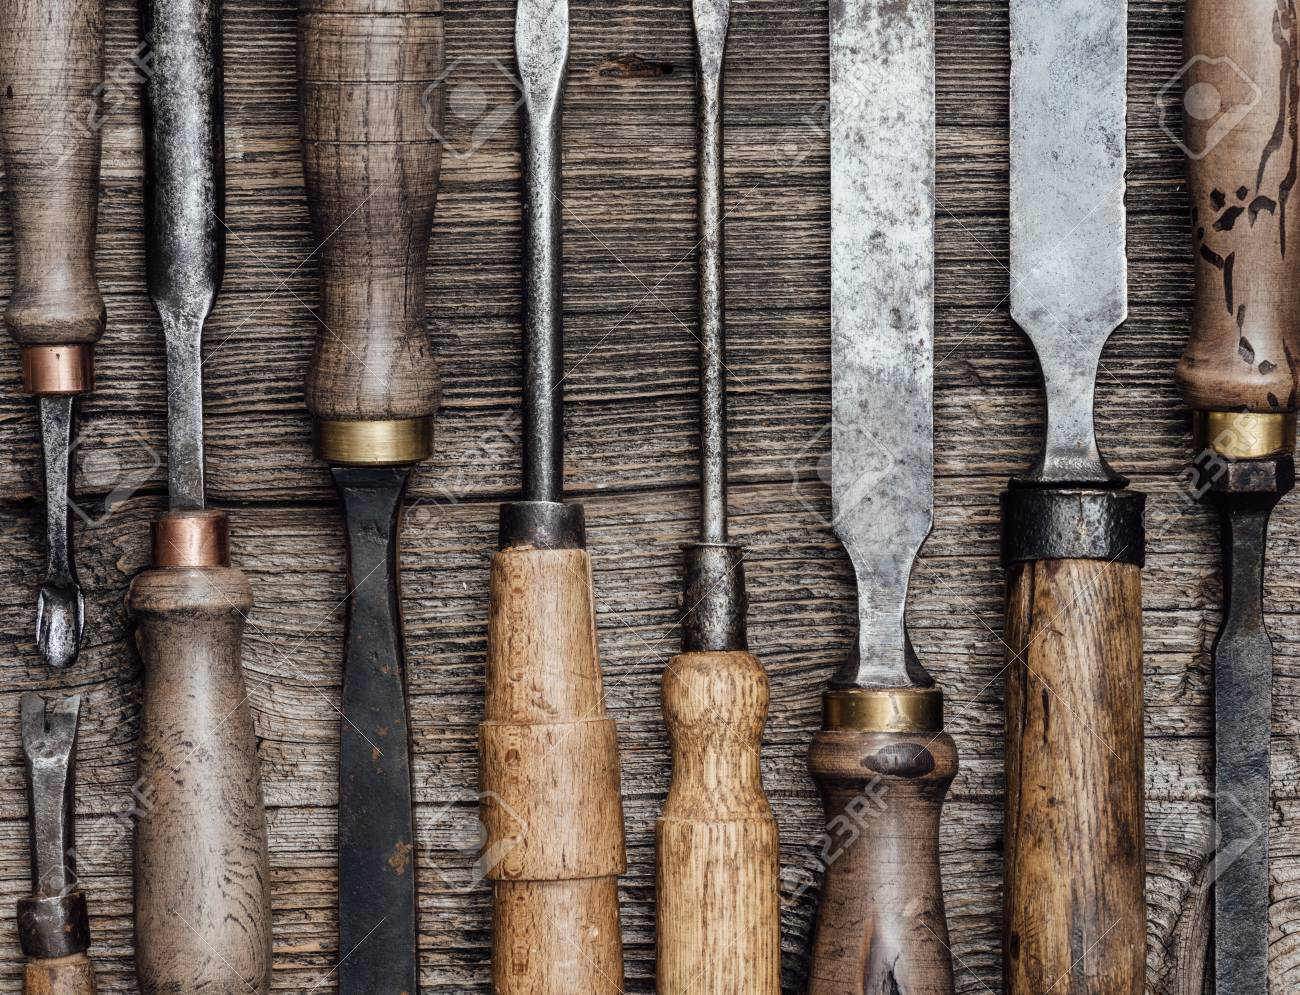 Set Of Used Professional Carving And Woodworking Tools On The